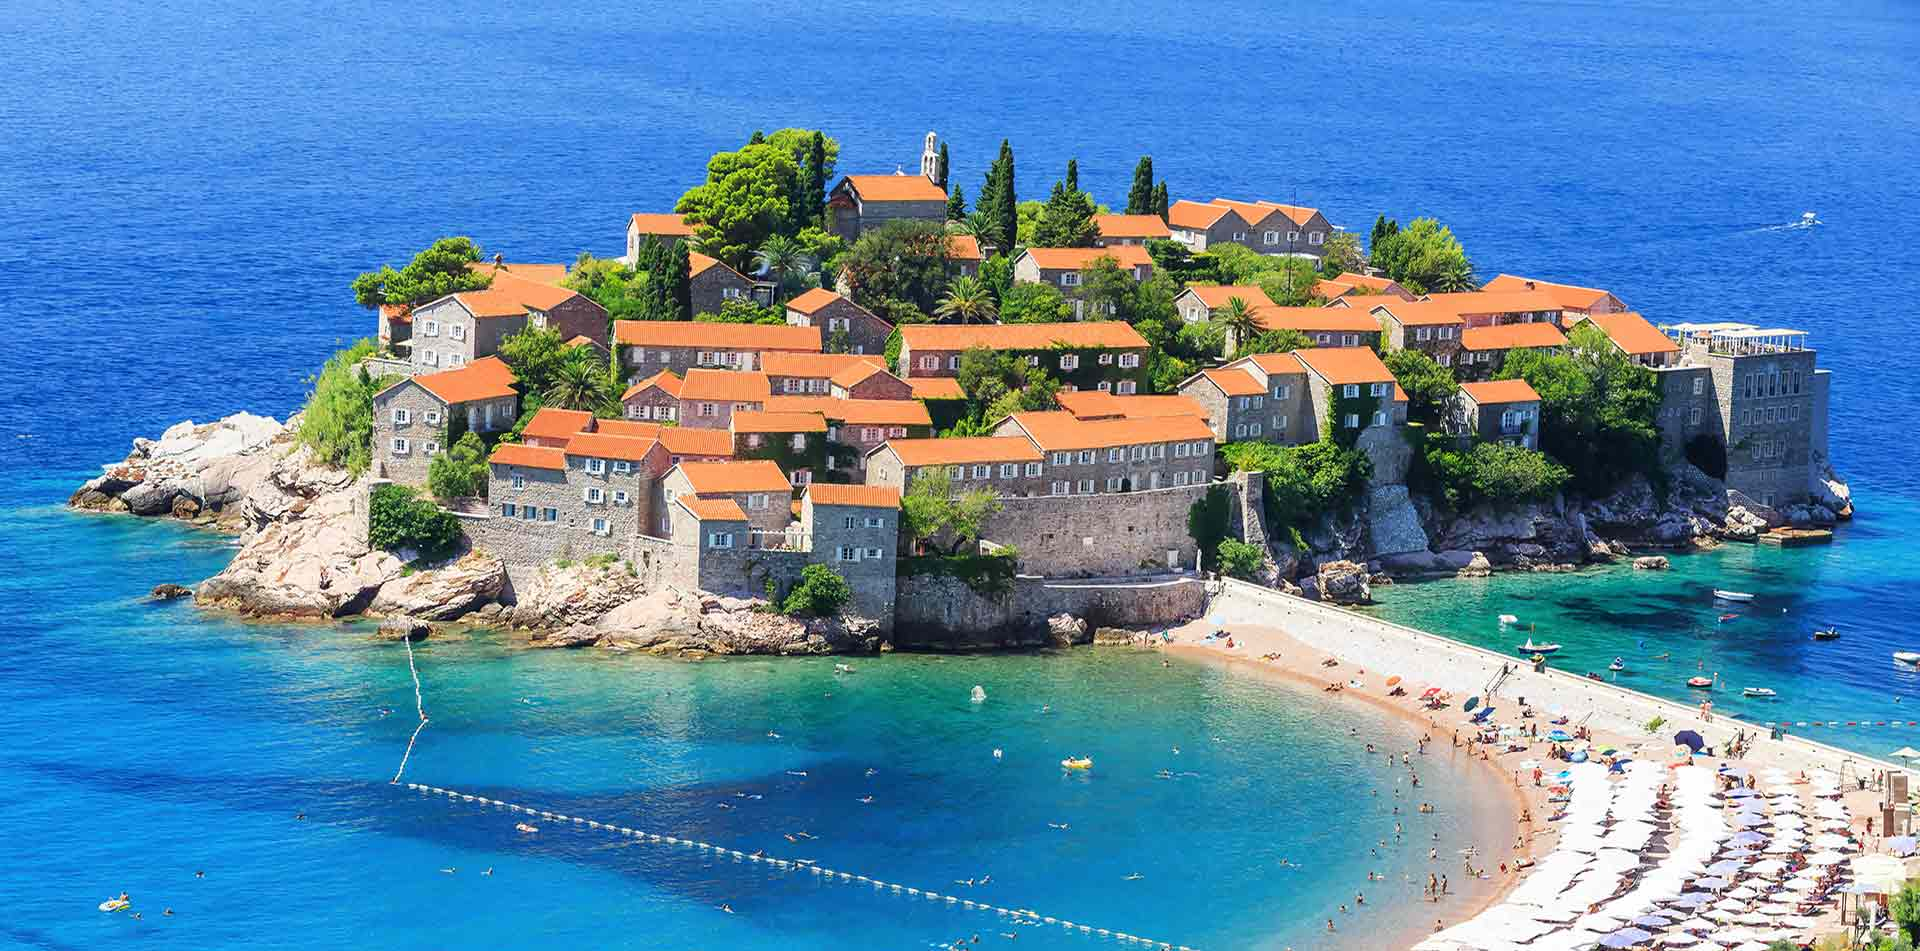 Europe Montenegro Image Water Houses Blue Mountains Viewpoint Hike Travel Tour - luxury vacation destinations